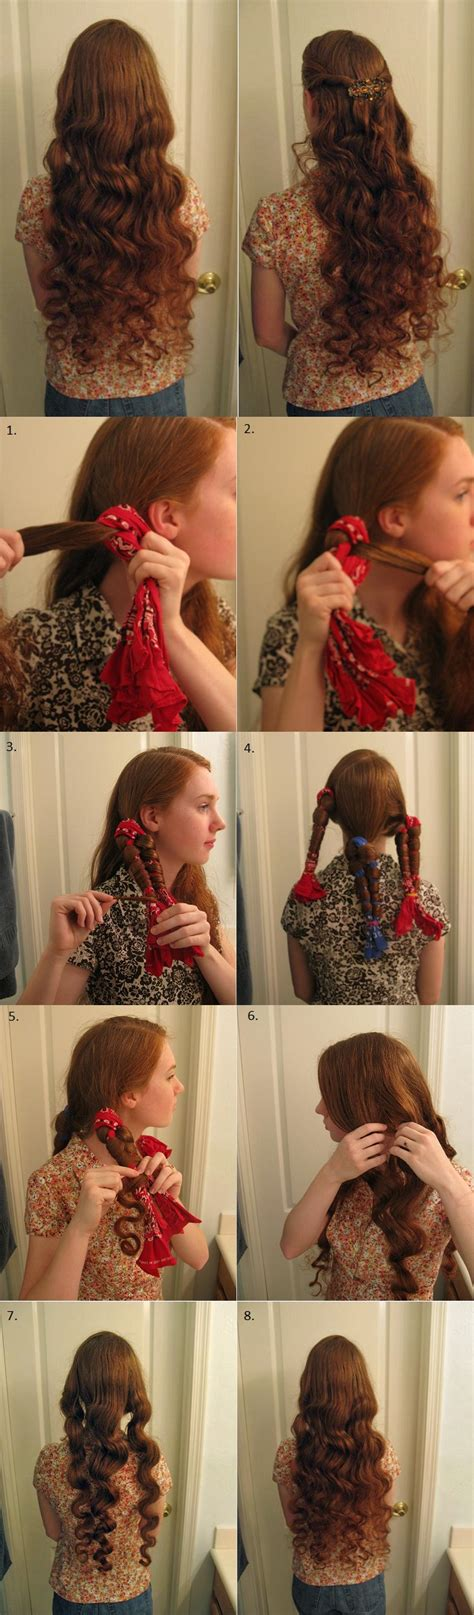 diy hairstyles without heat no heat curls alldaychic